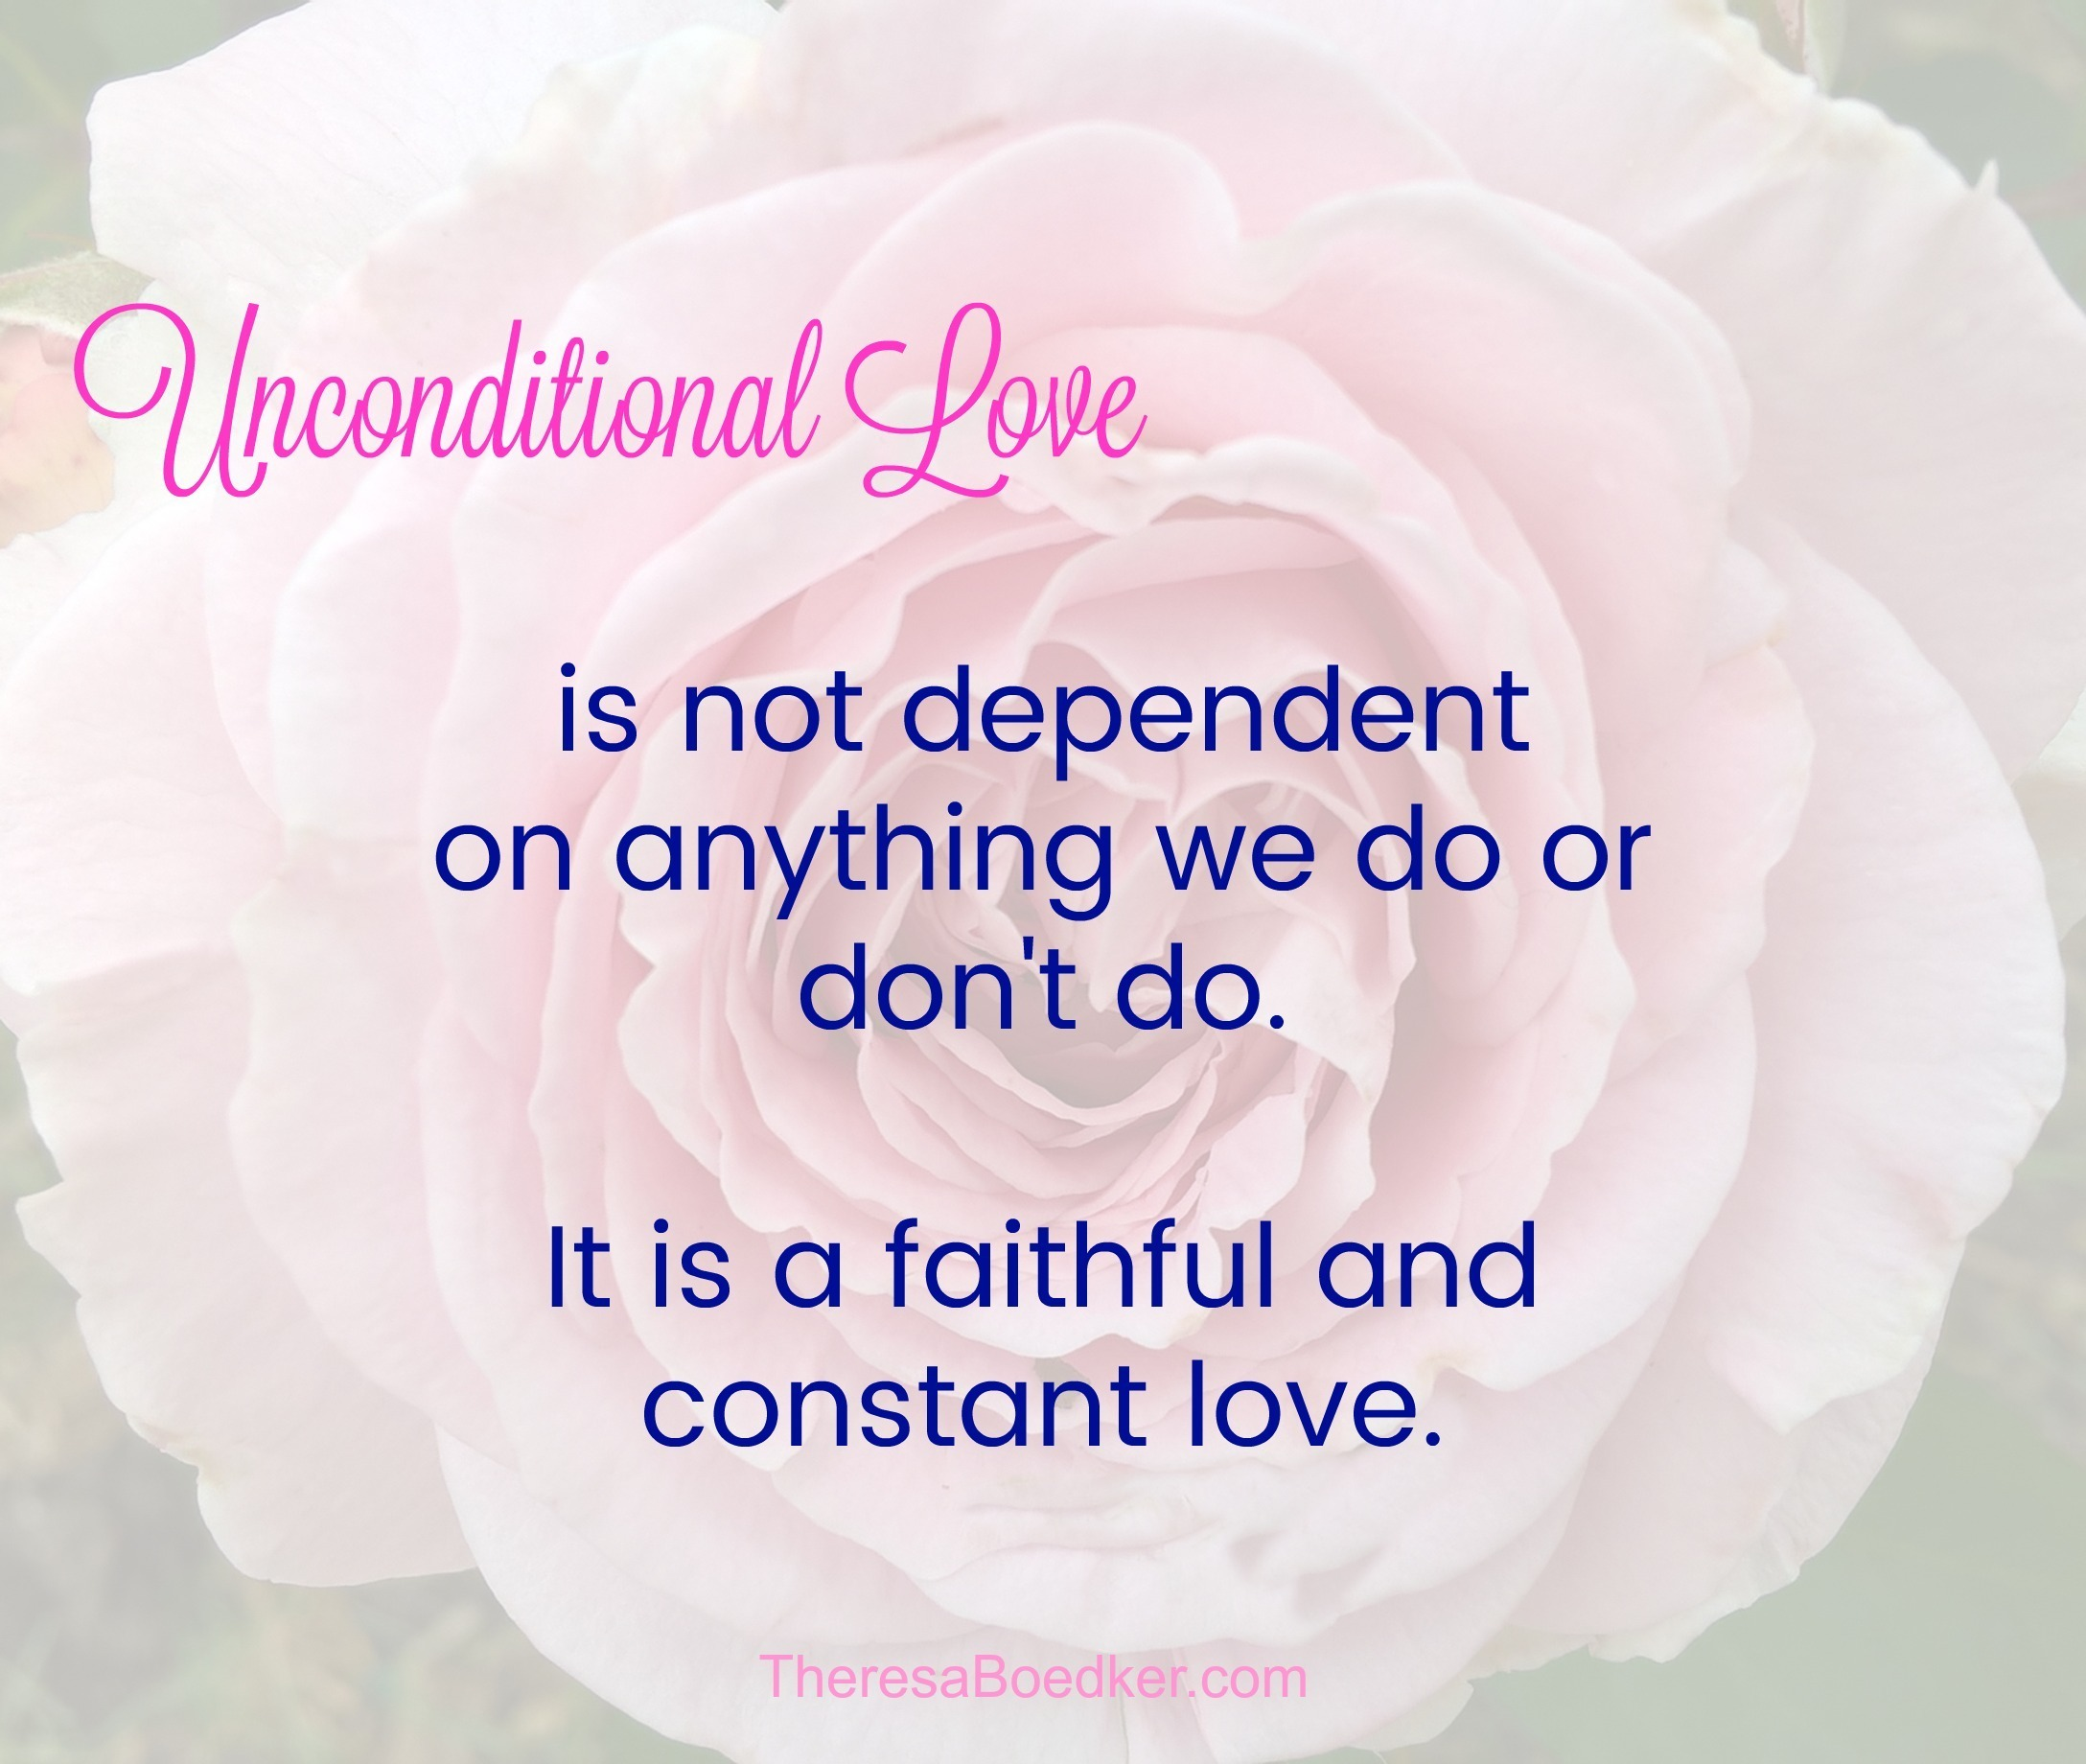 Discover 11 traits of unconditional love. Learn how to love unconditionally, both yourself and others, so that you and others can thrive in relationships.